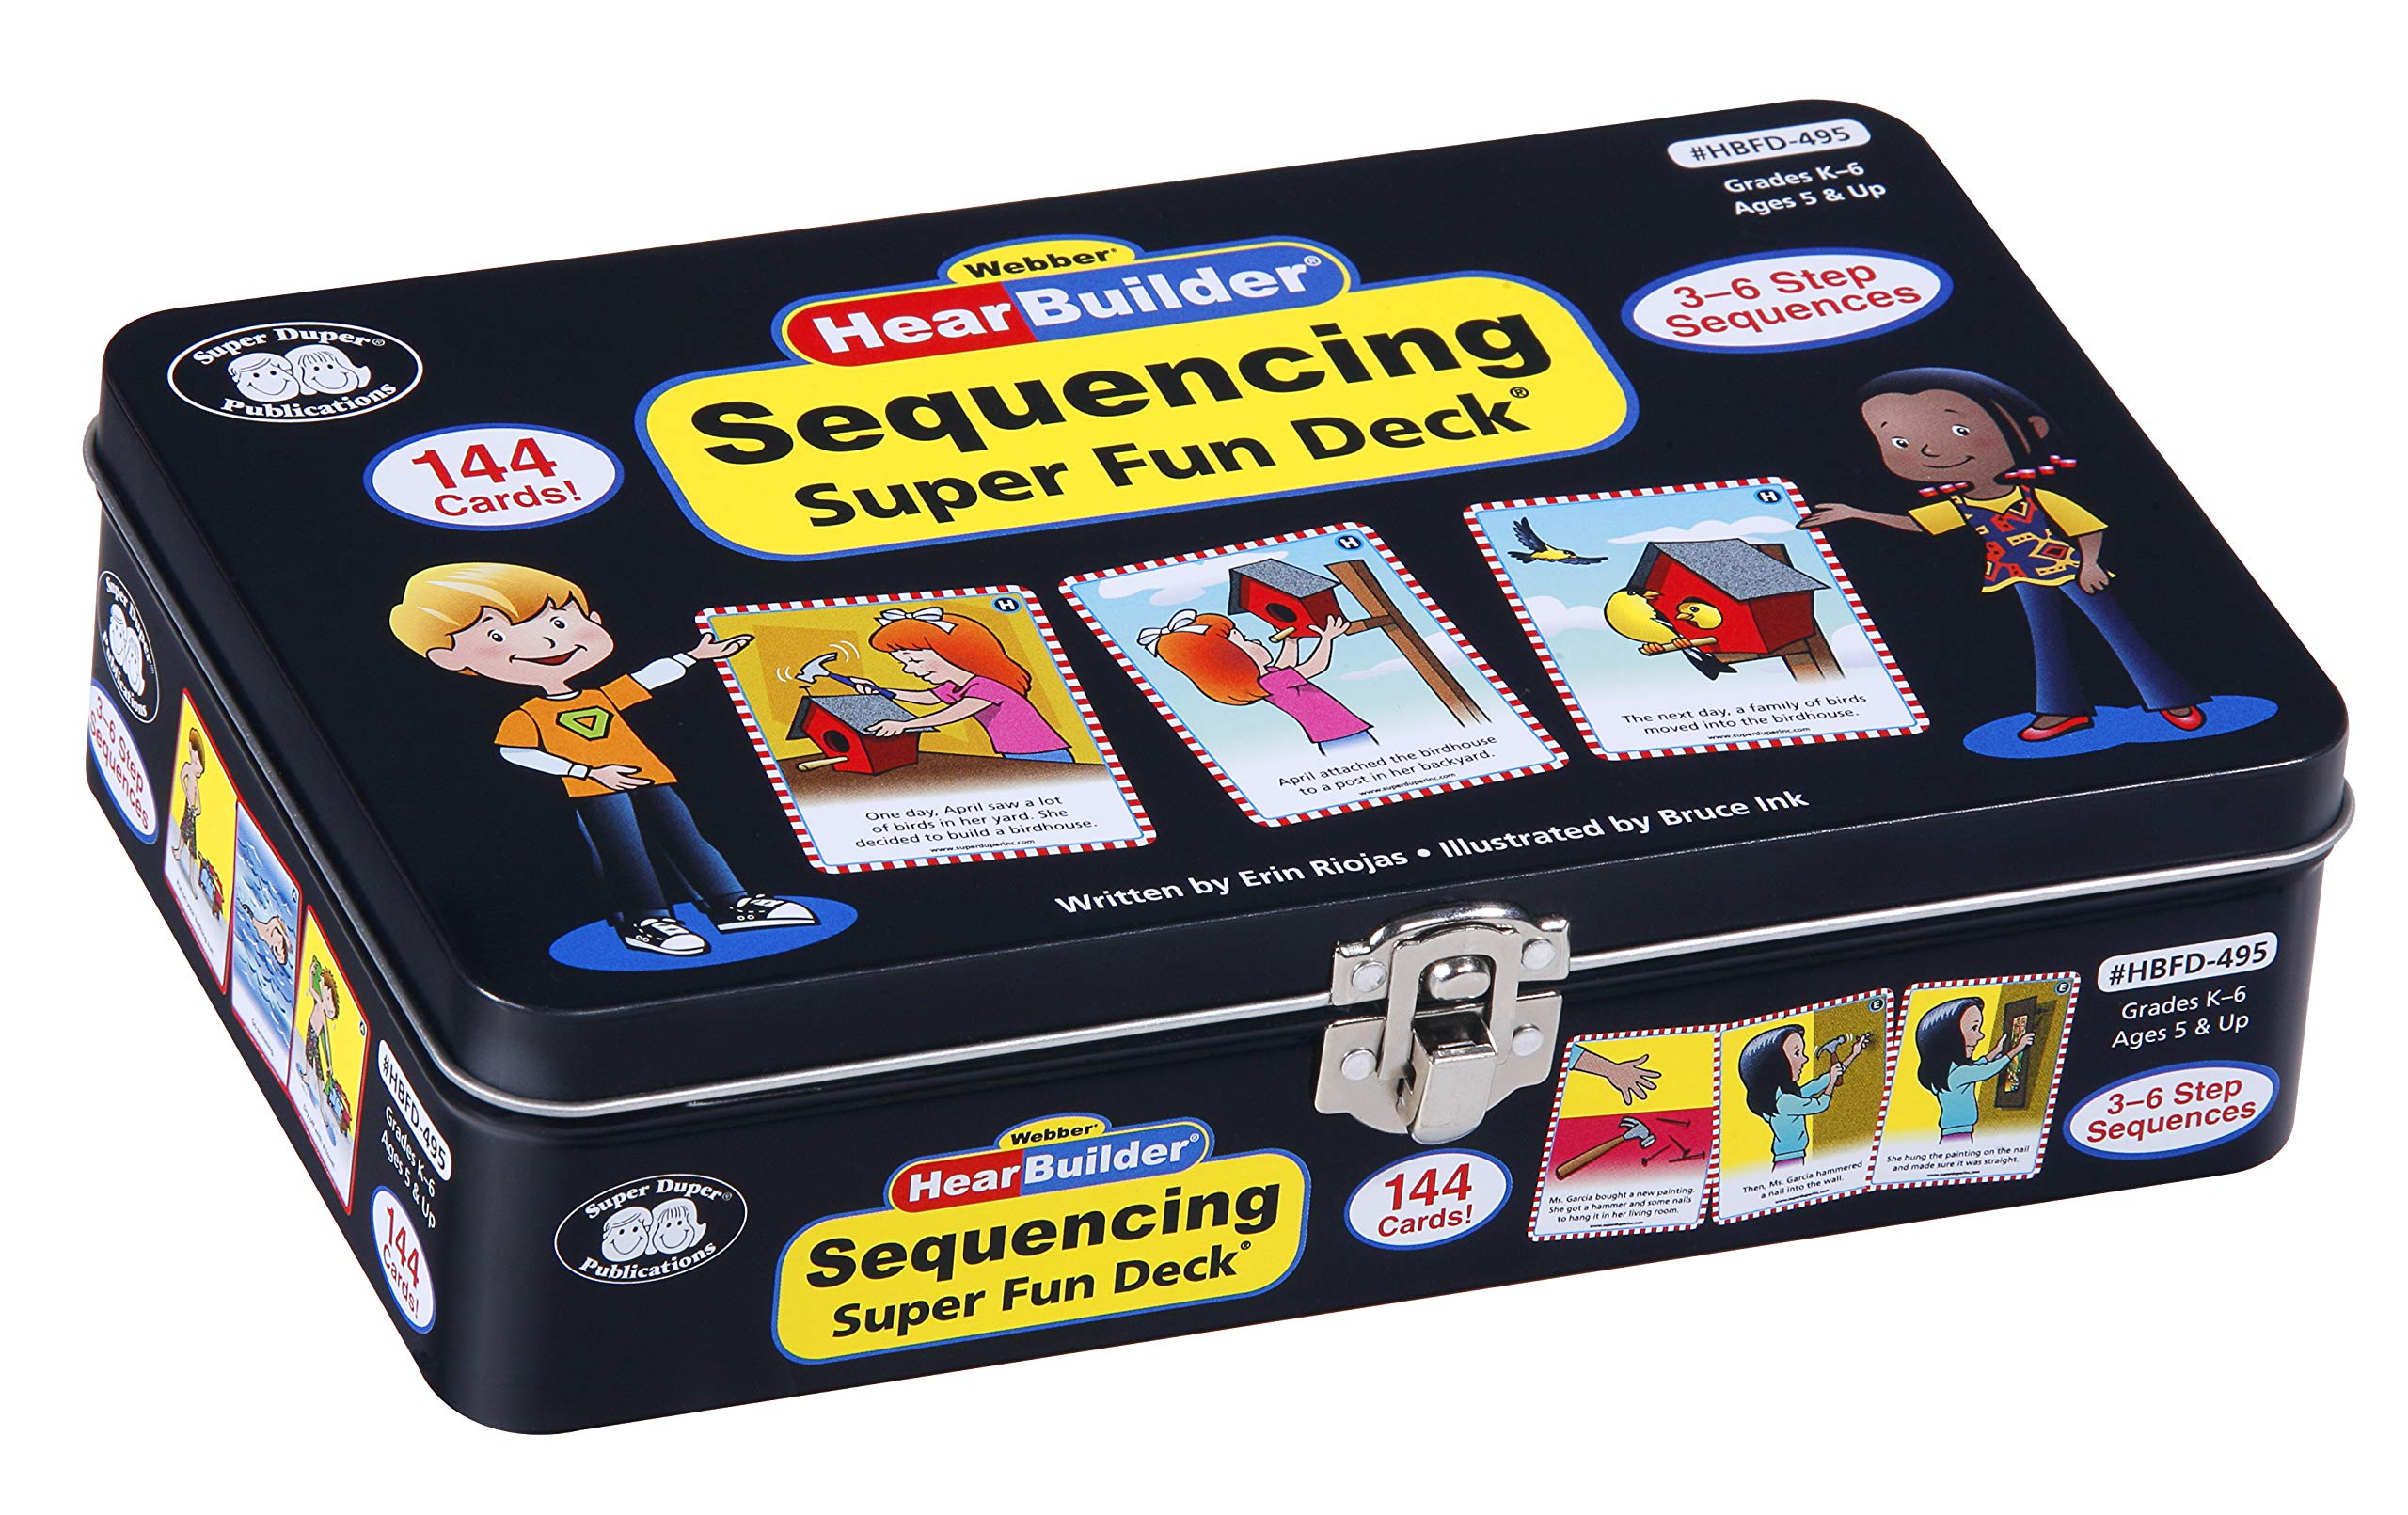 Super Duper Publications HearBuilder Sequencing Flash Card Fun Deck Educational Learning Resource for Children by Super Duper Publications